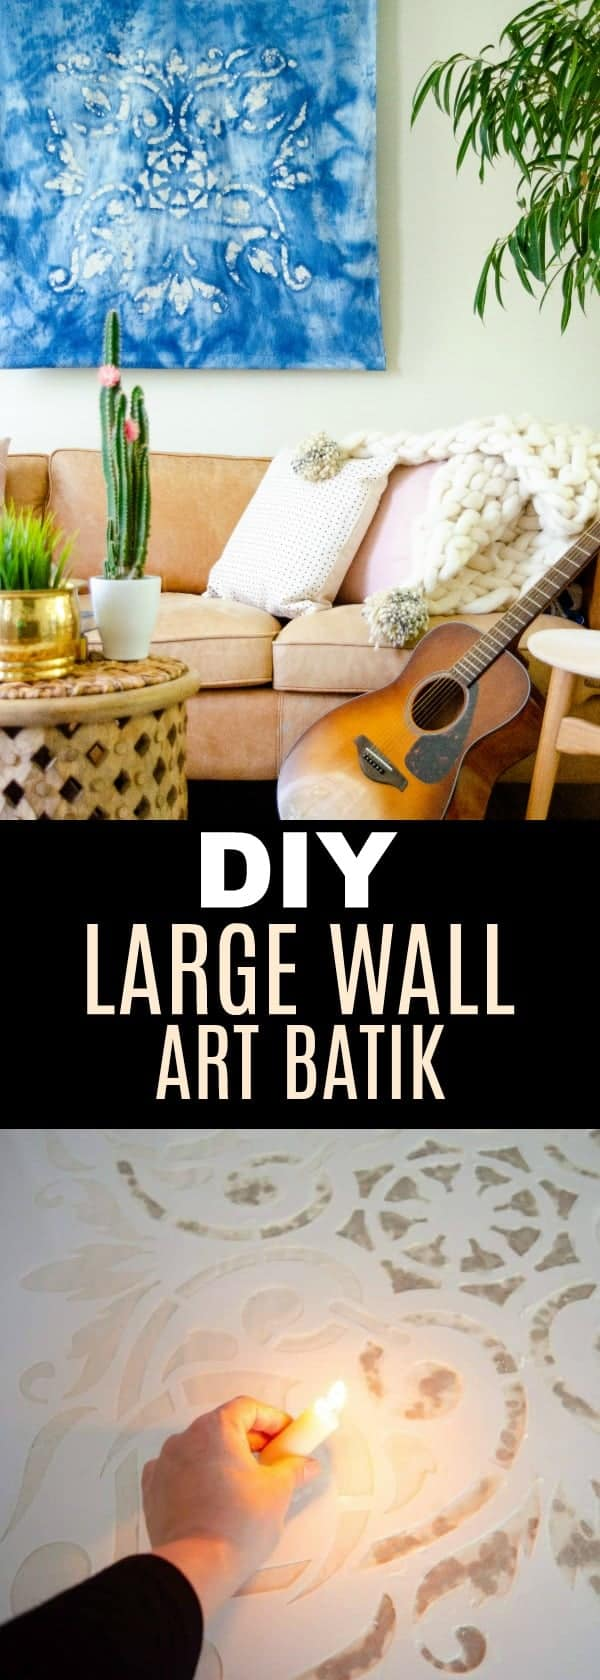 Make this awesome Stencil Revolution Large Wall Art Batik! #stencilrevolution #largewallart #wallart #batik #tapastry #DIYwallhanging #textile #waxrelief #waxart #tiedye